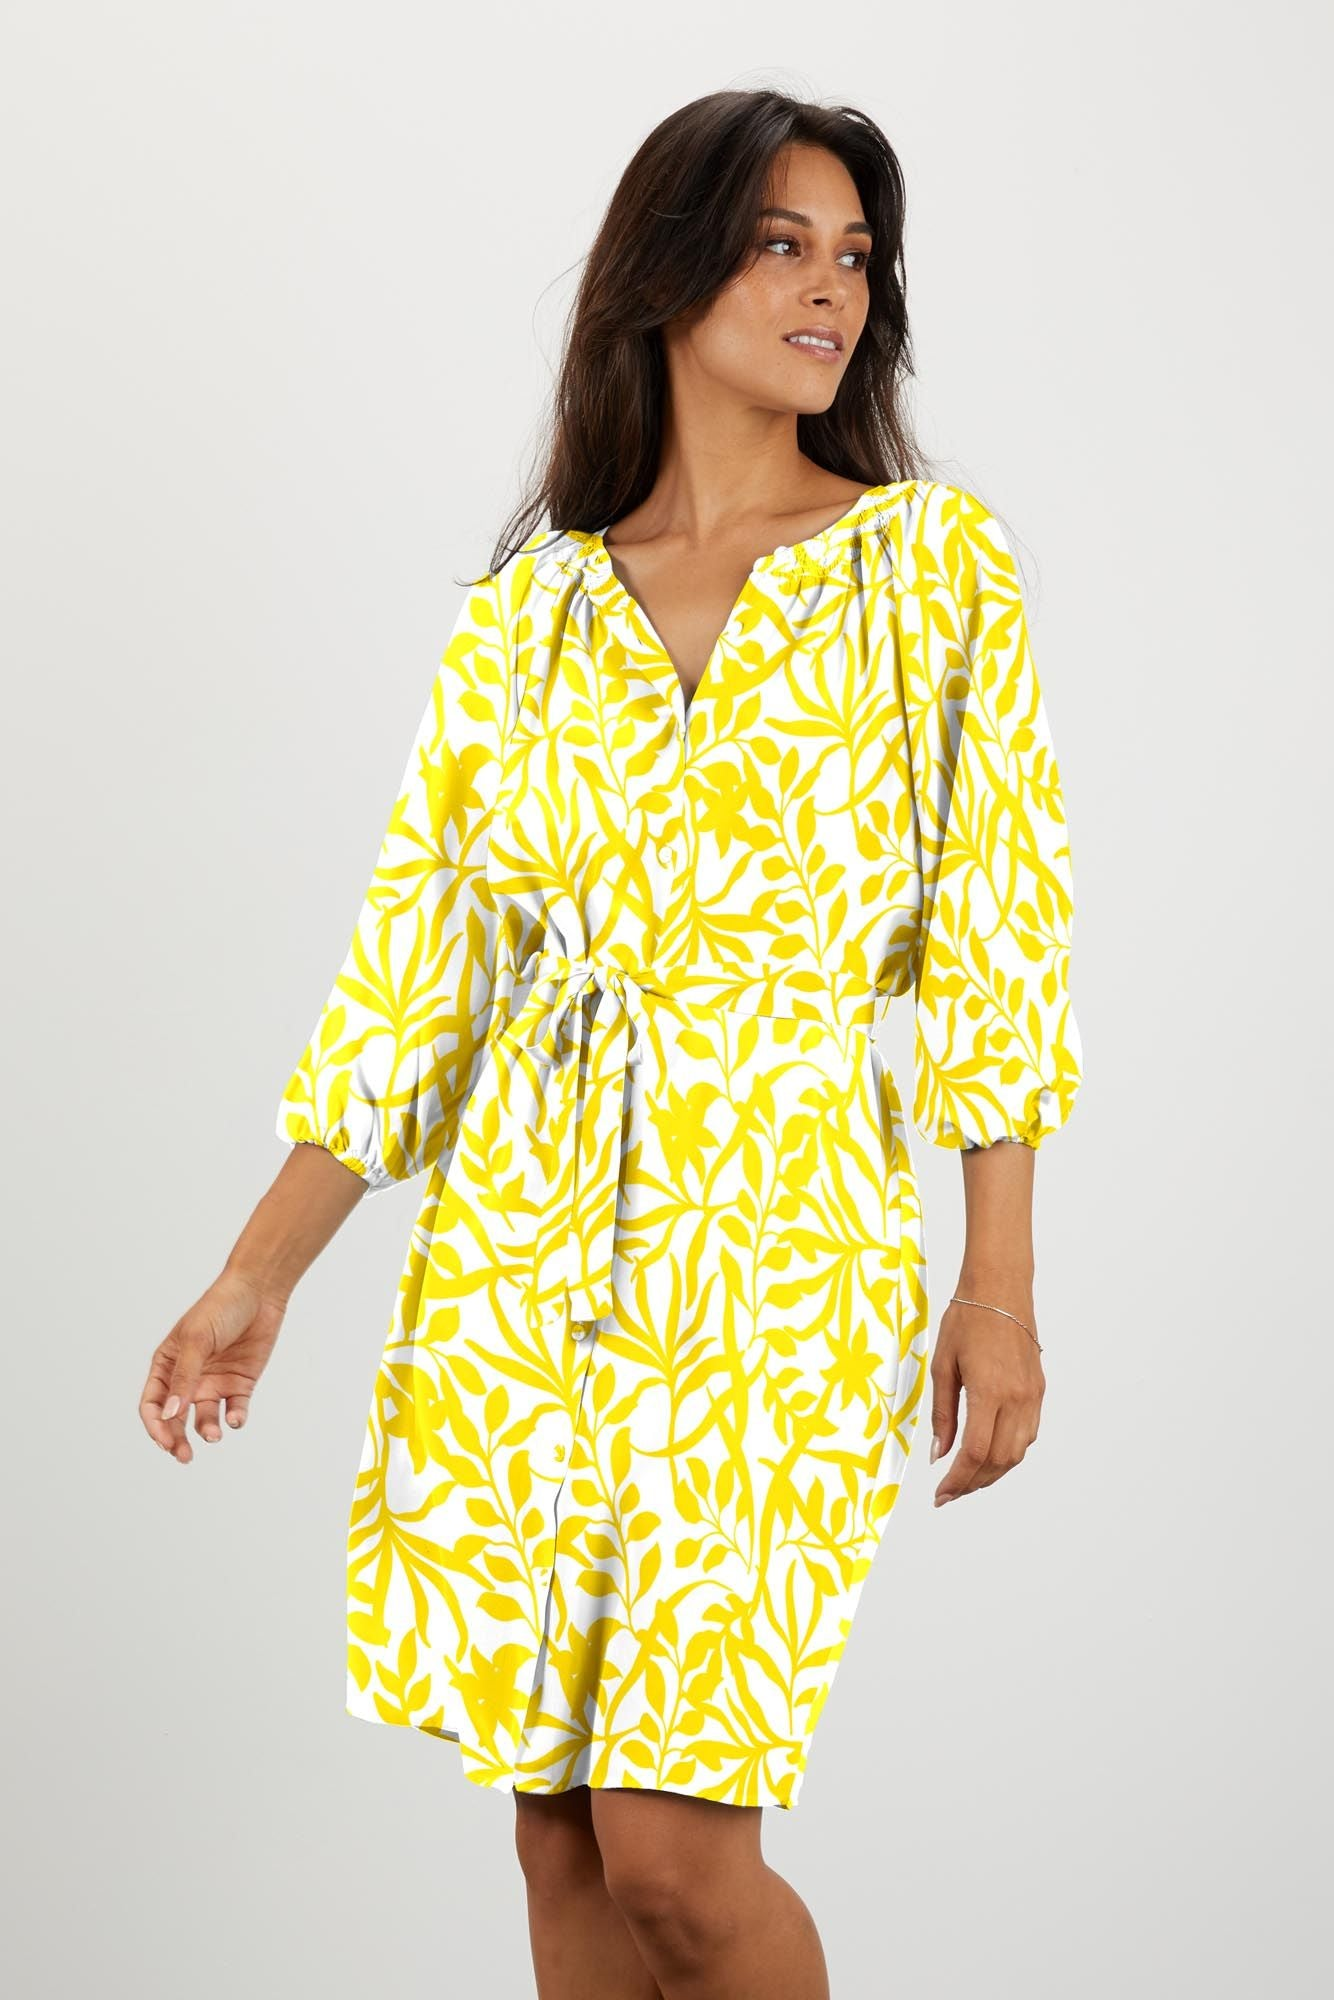 The Classic Knee Length Dress | Lemon Figi Floral